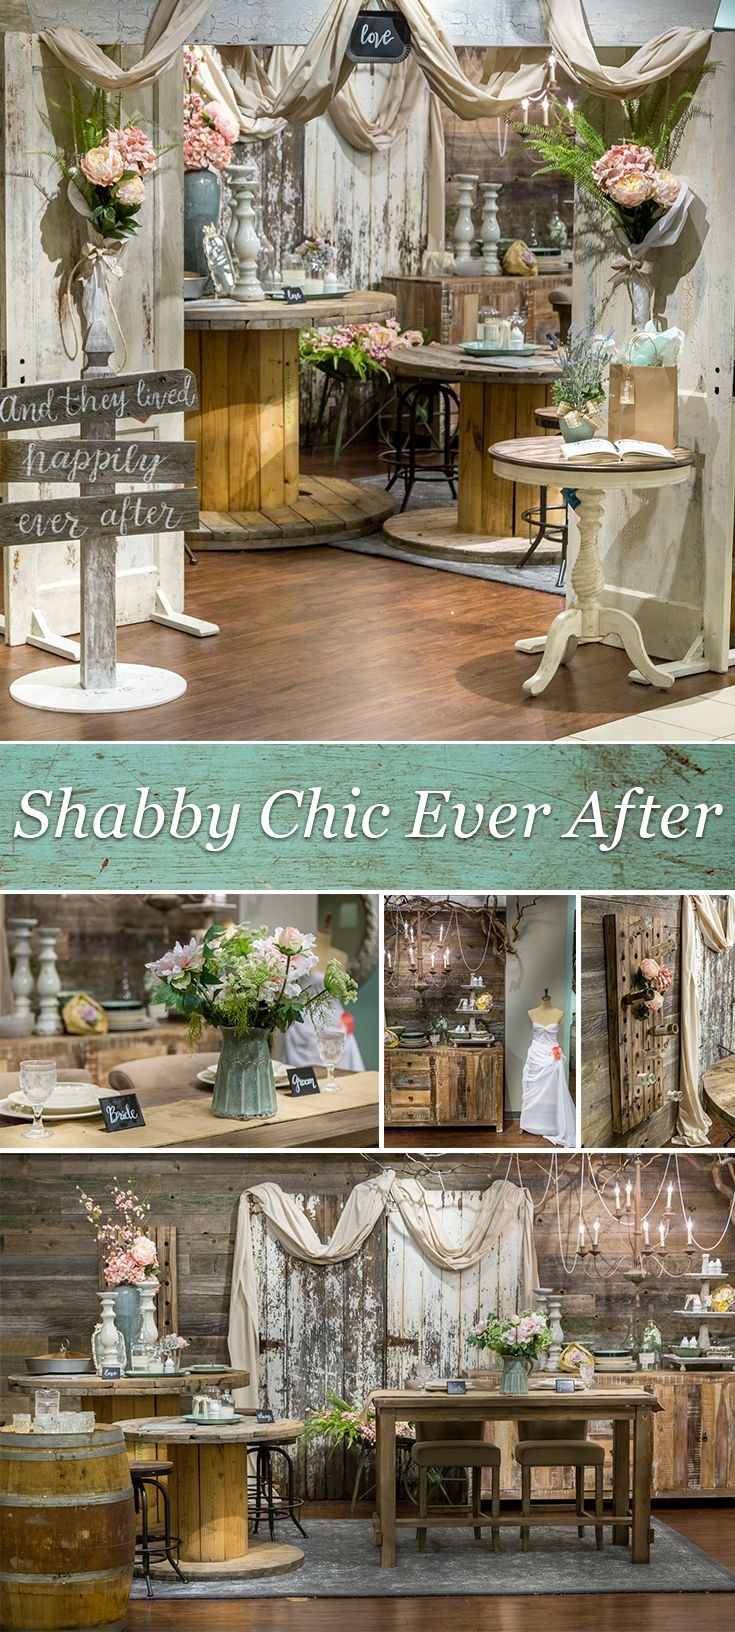 46 best images about shabby chic ever after on pinterest for Cheapest furniture ever